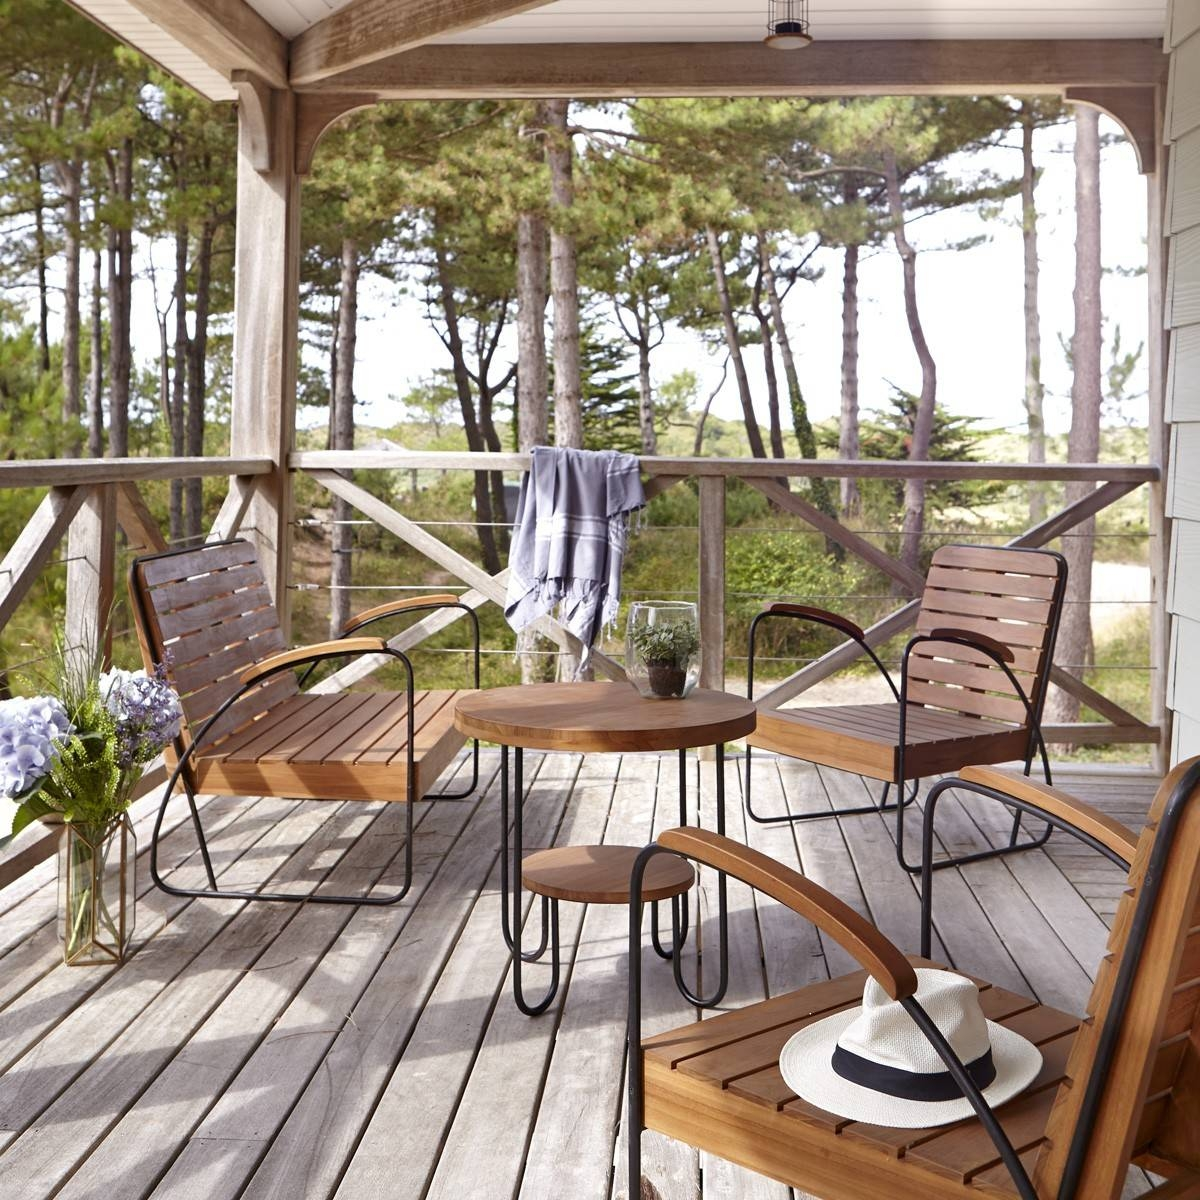 Tikamoon : Key Wood Outdoor Coffee Table And Chairs Inside Wooden Garden Coffee Tables (Image 24 of 30)